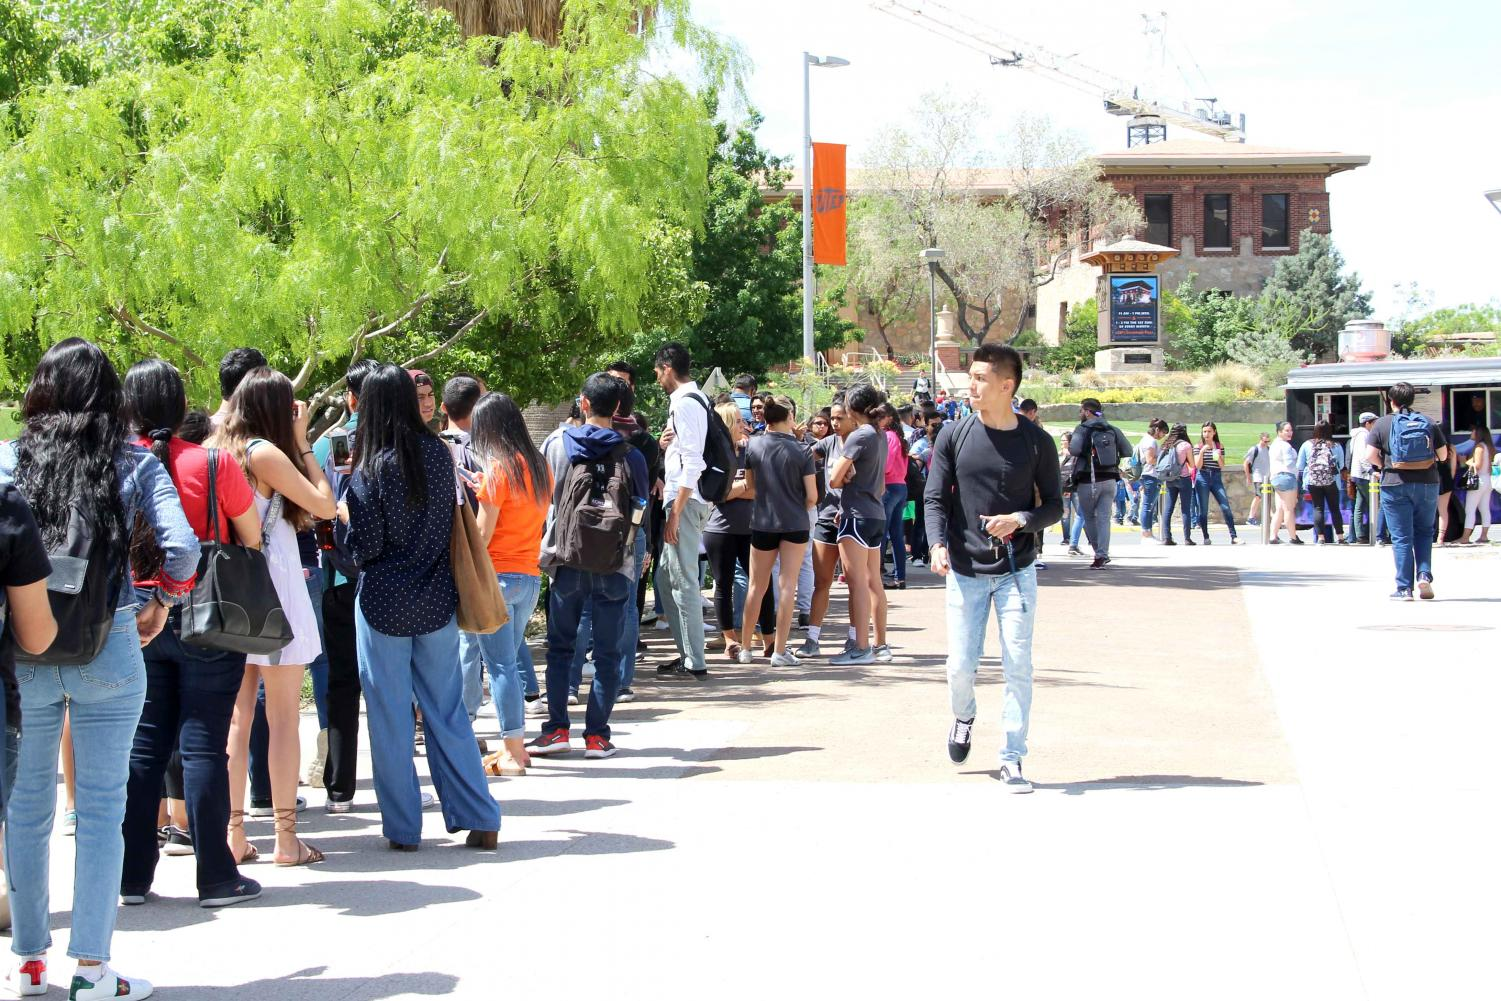 SGA offered free food to the first 250 students at the first Miner Fest on Wednesday, April 18 at Centennial Plaza.